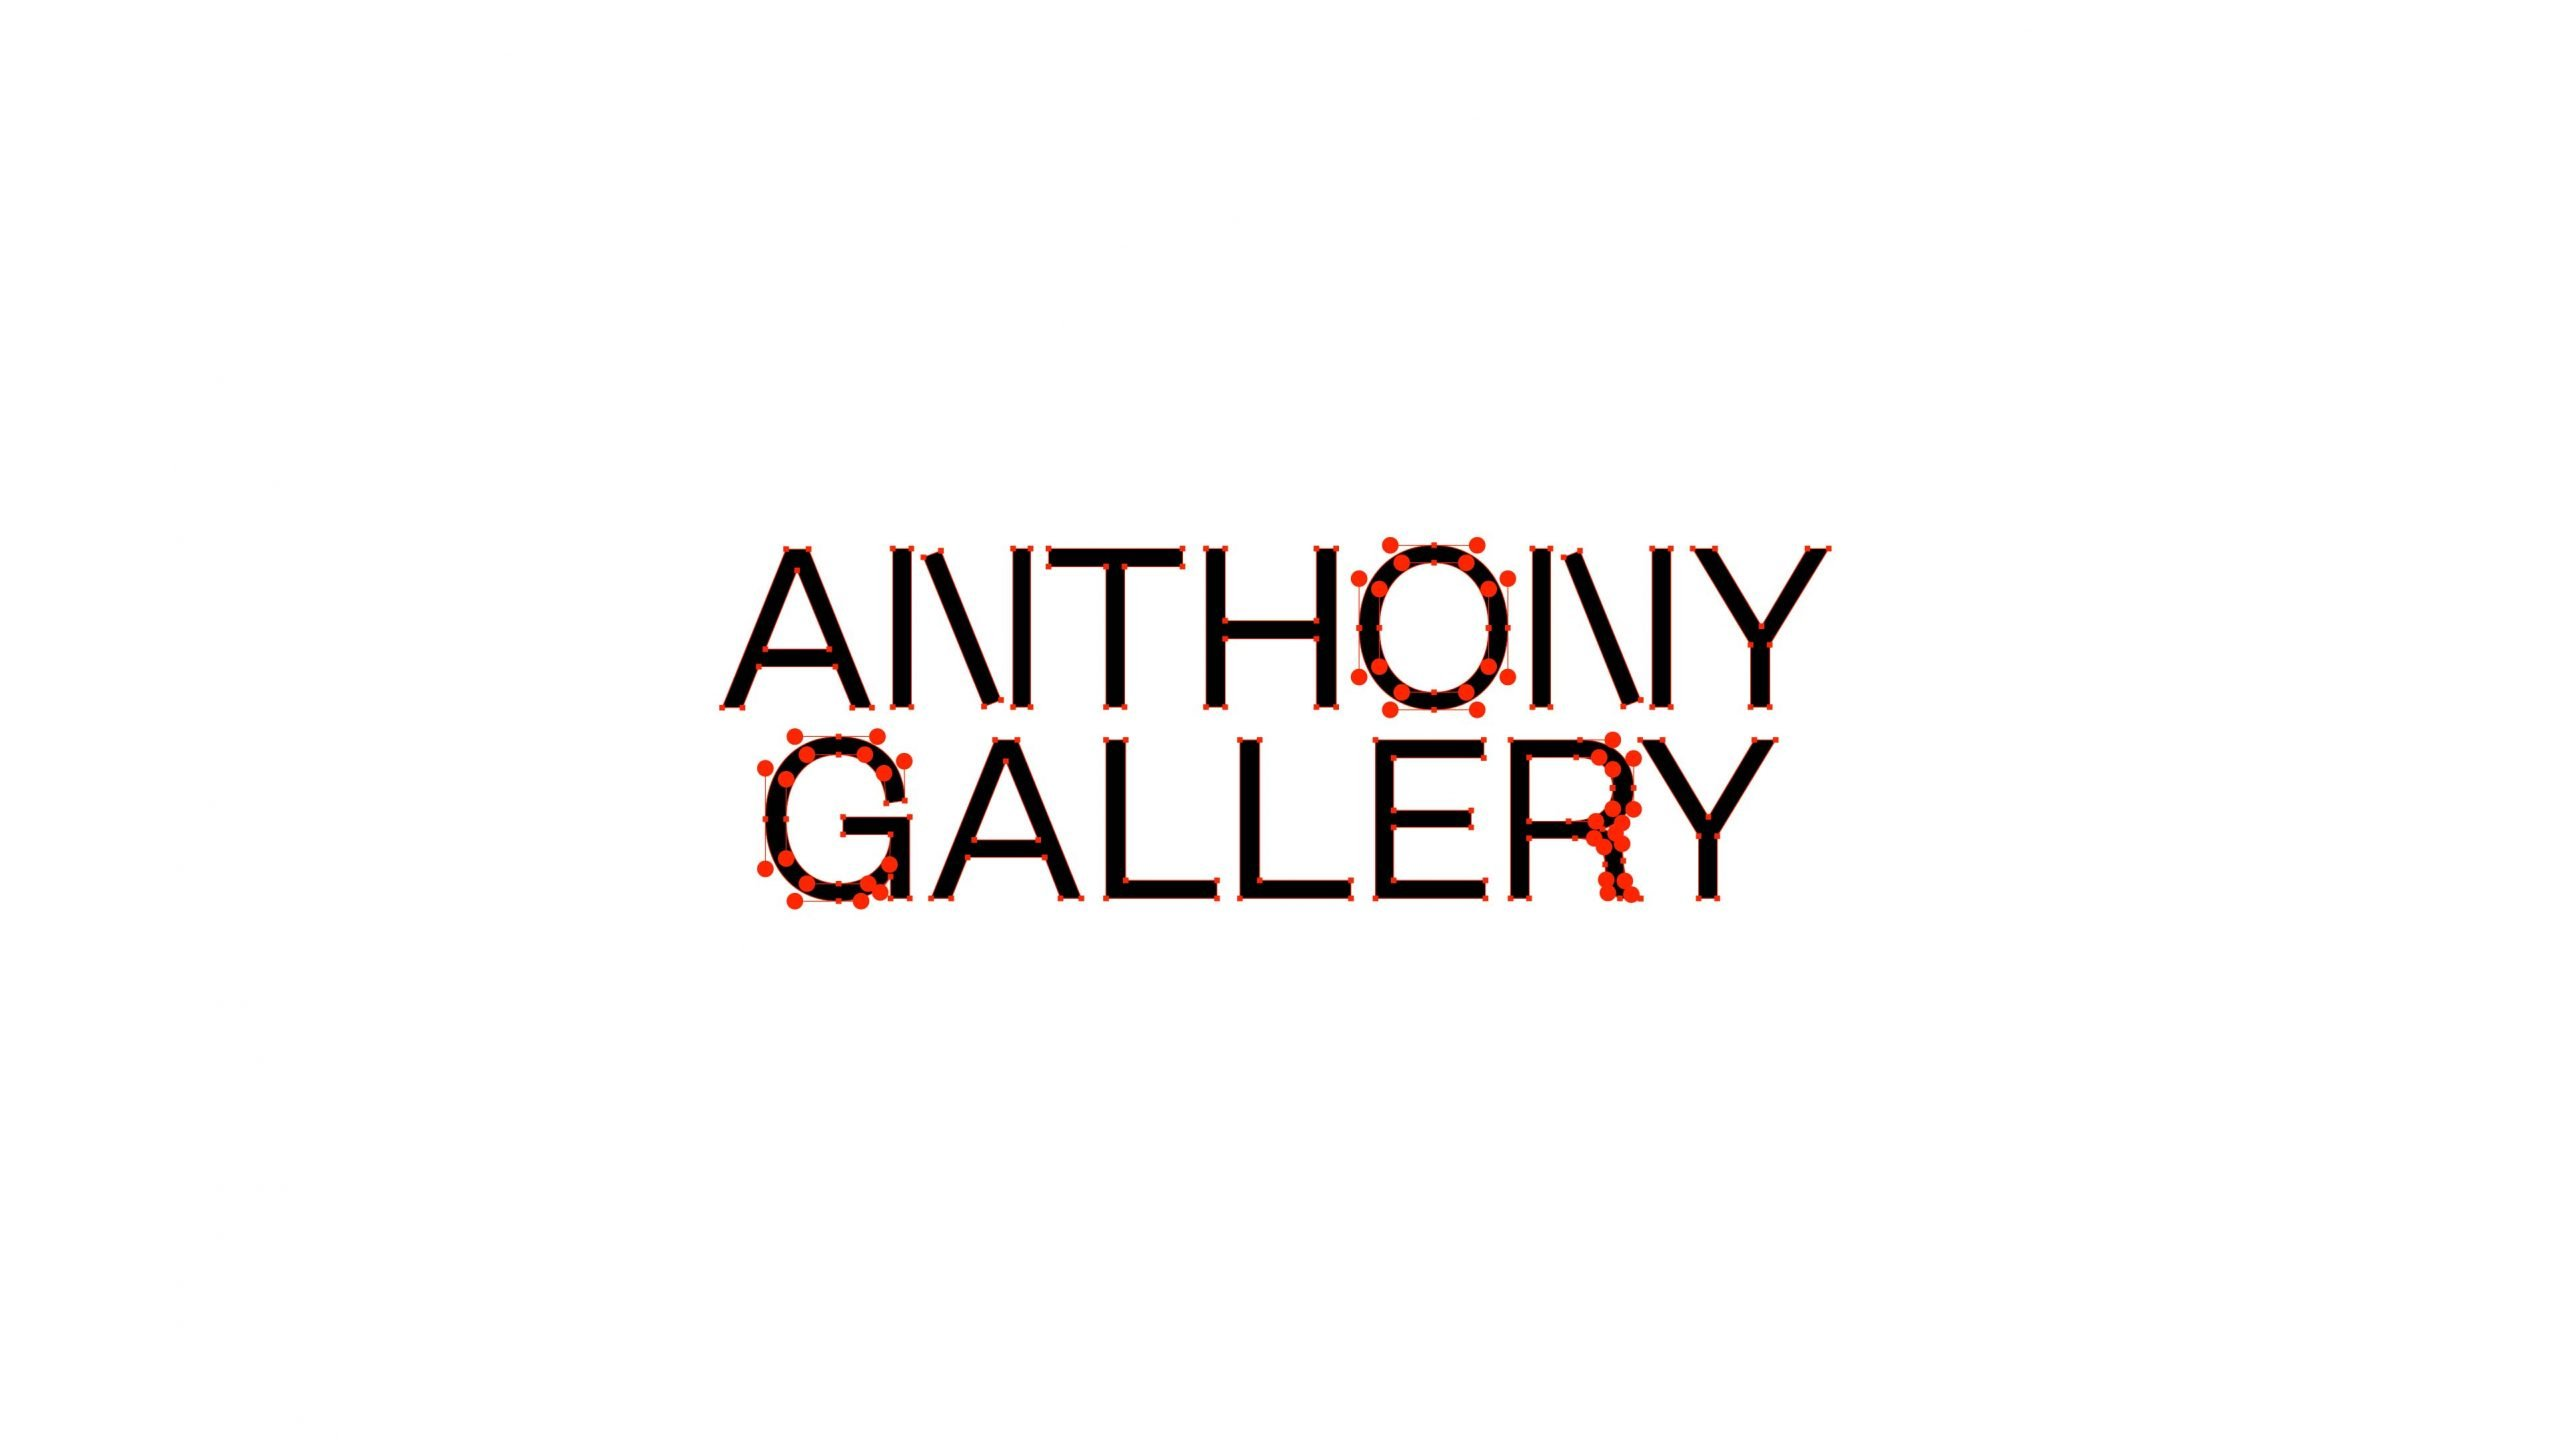 ANTHONY-GALLERY-identity-04